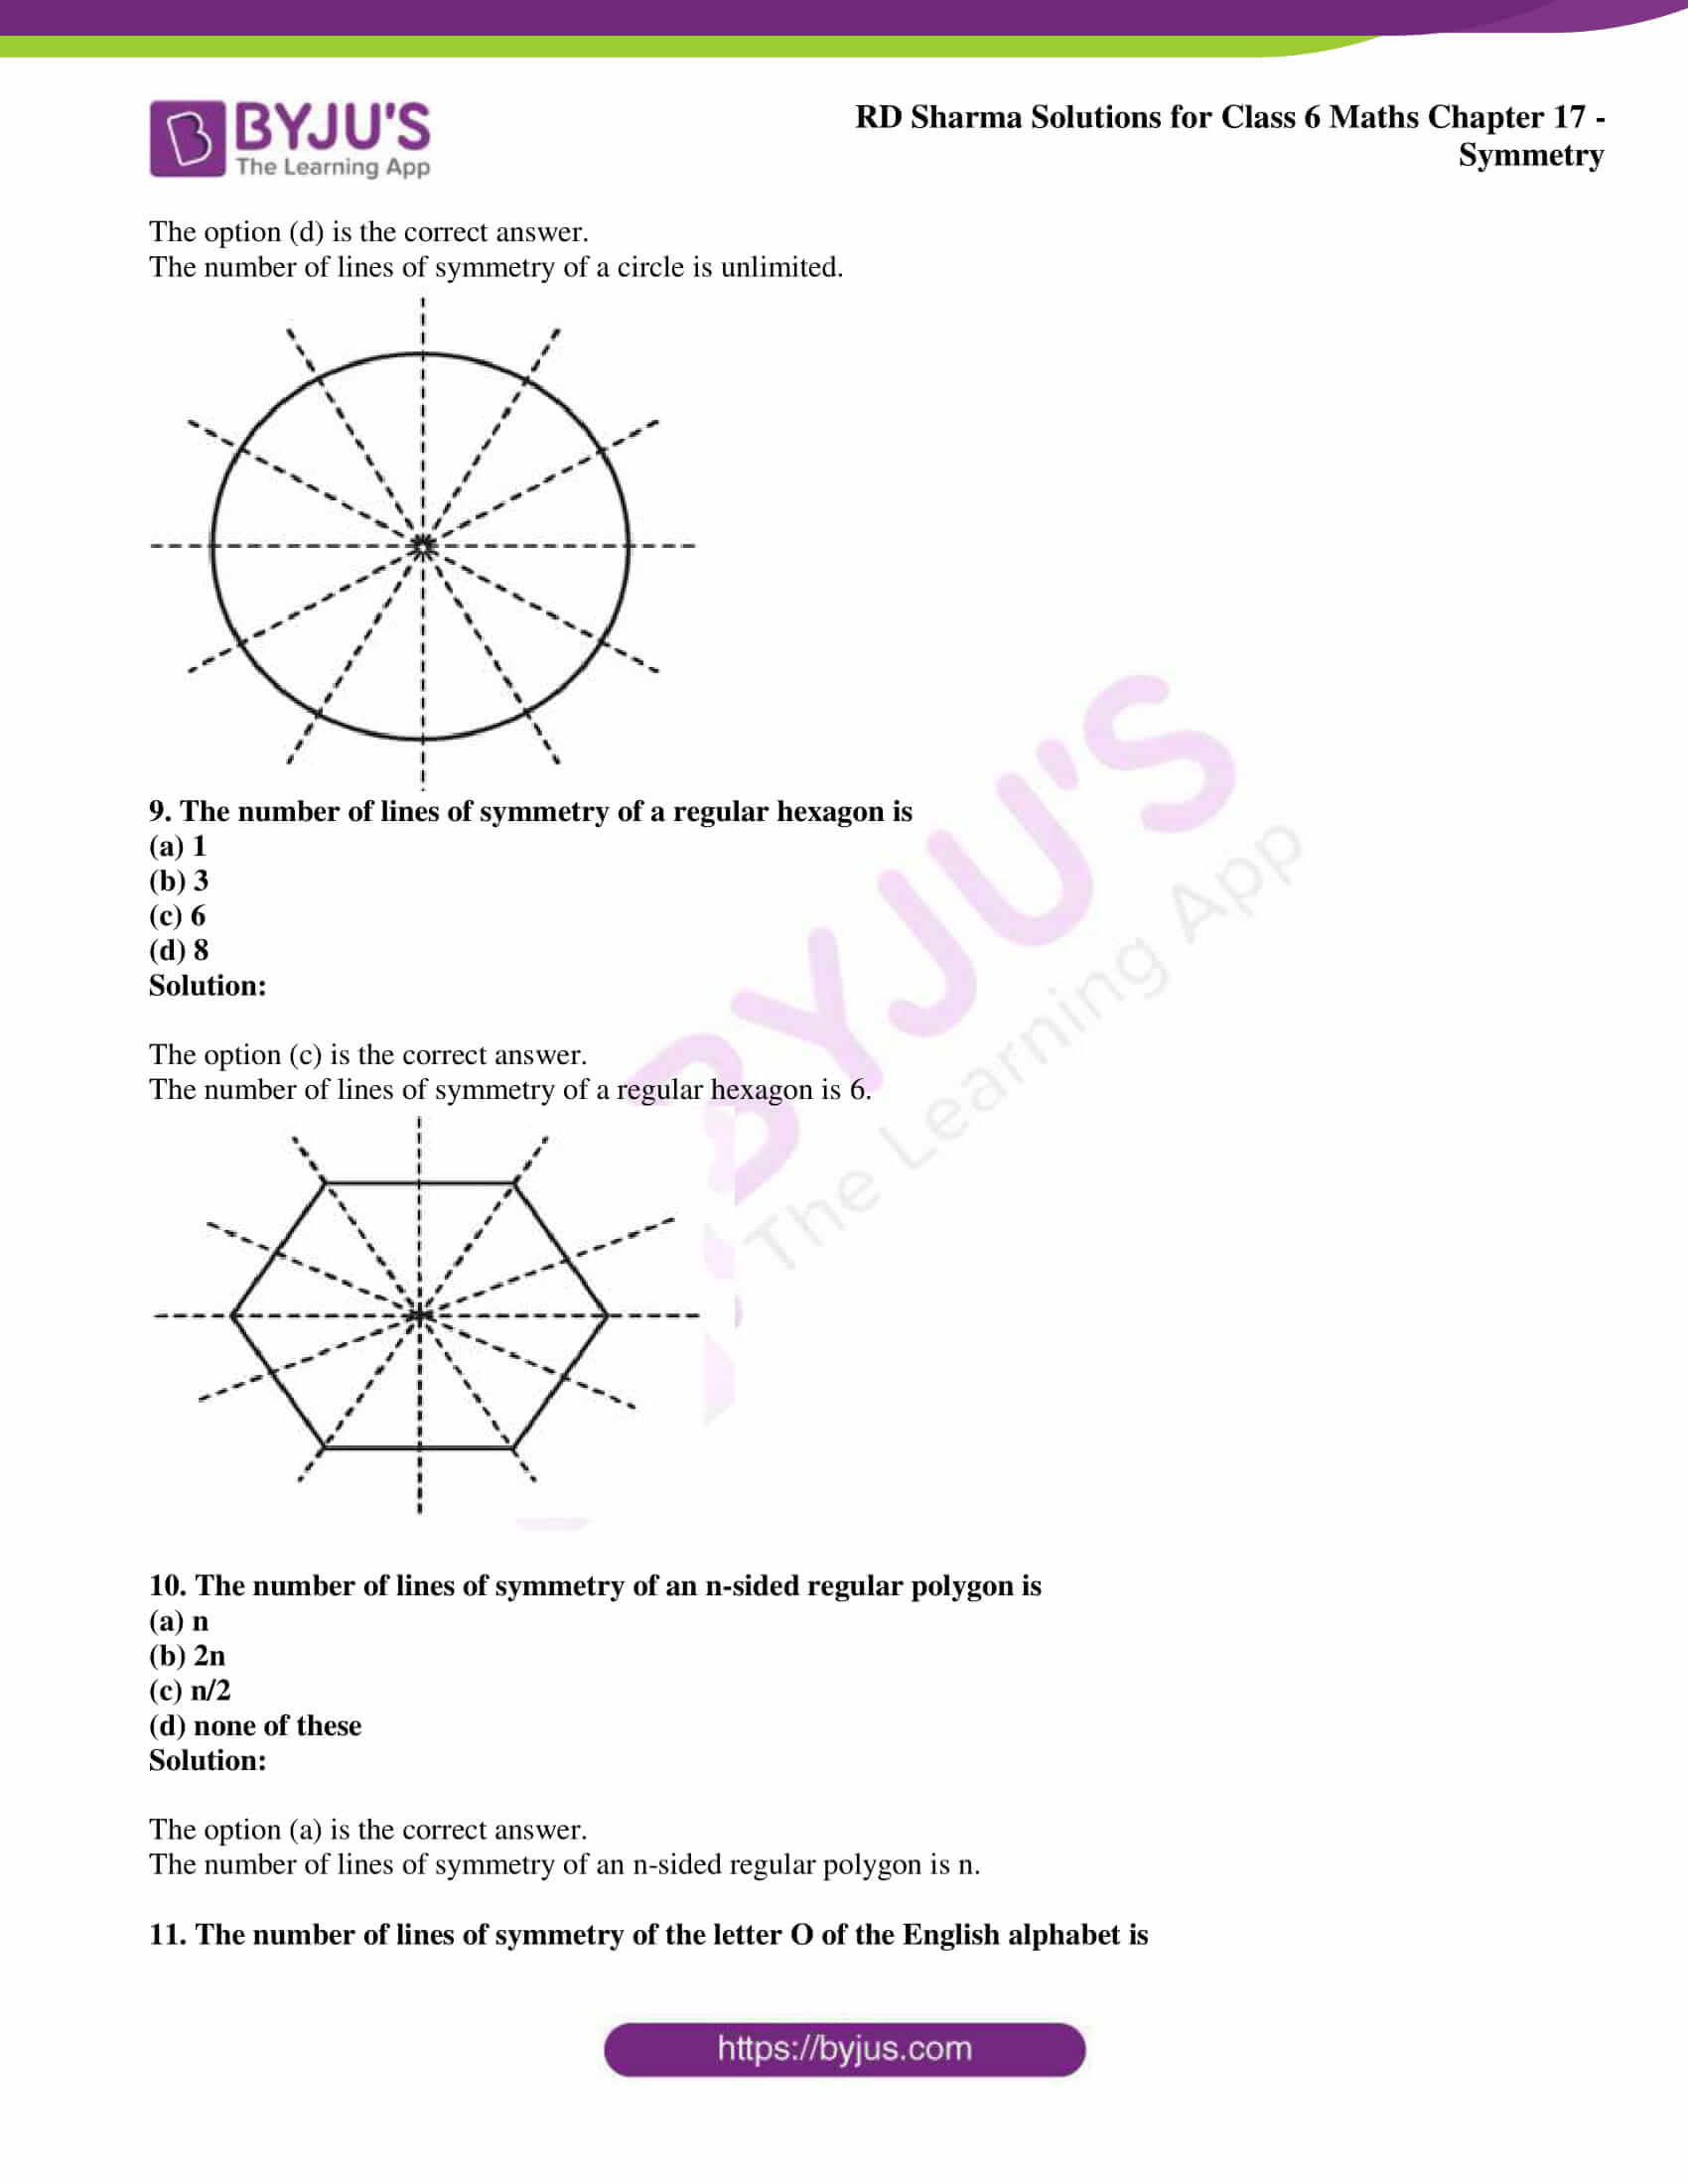 rd sharma solutions nov2020 class 6 maths chapter 17 exercise obj 4